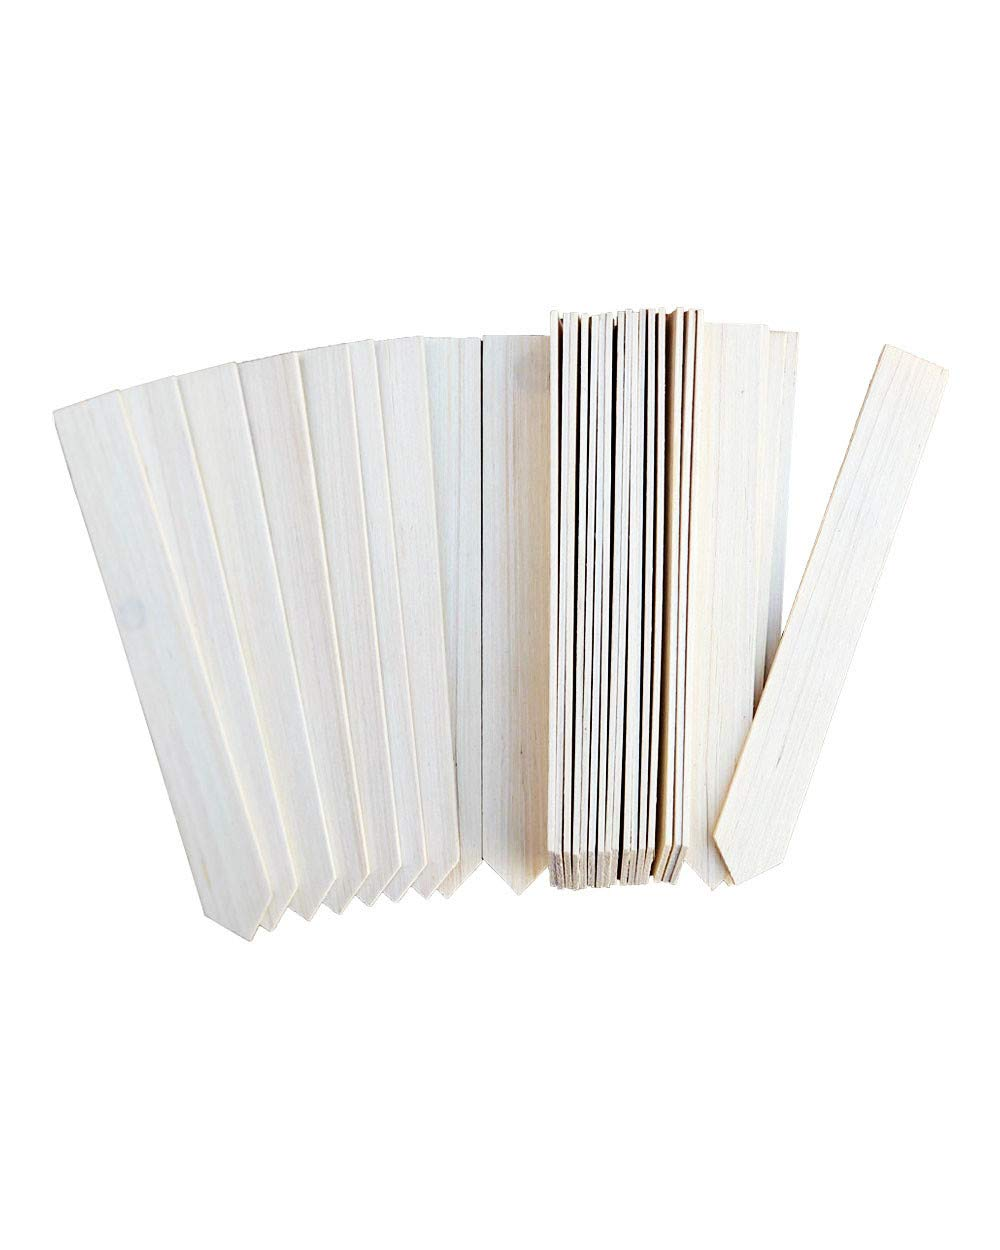 Galleon - 30 Large Wood Plant Labels Gardening Stakes Garden